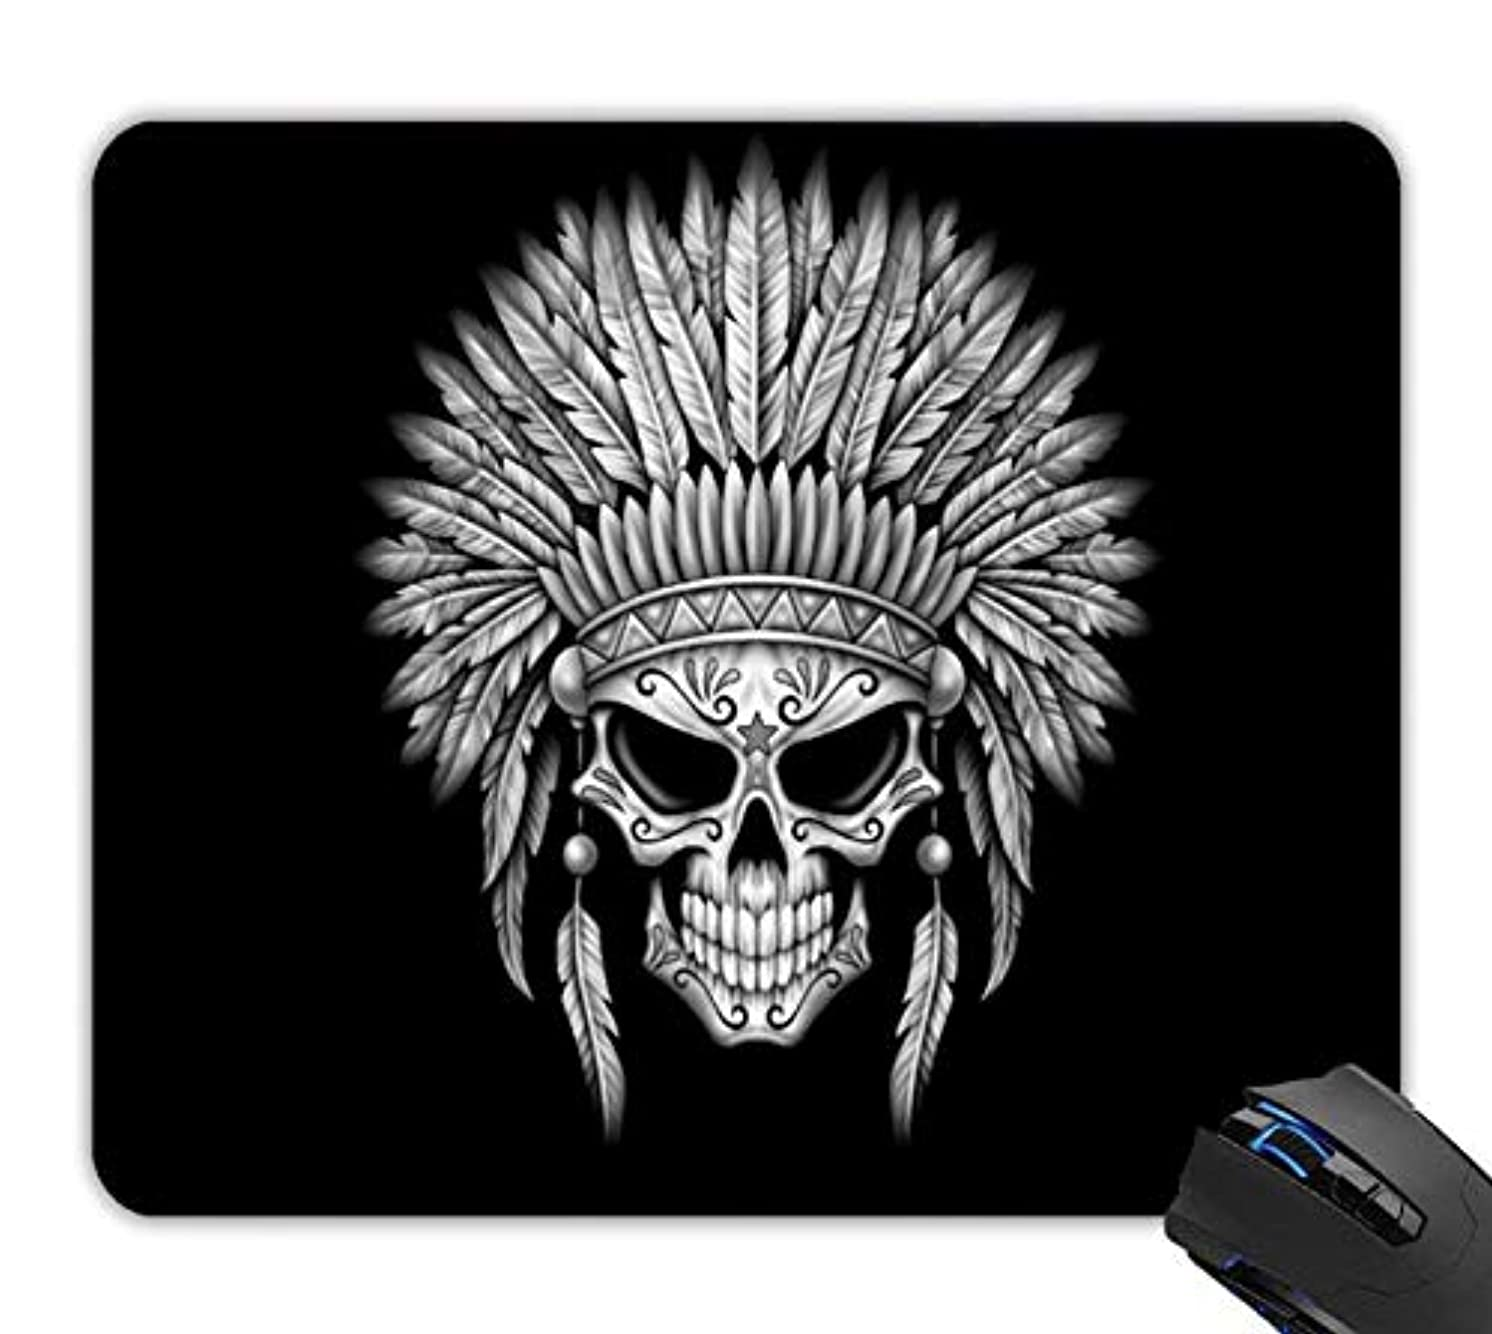 OTTIET Custom Dark Native Sugar Skull with Headdress Gaming Mouse Pad 9.5 X 7.9 Inch (240mmX200mmX2mm).Non-Slip Thick Rubber Large Mousepad